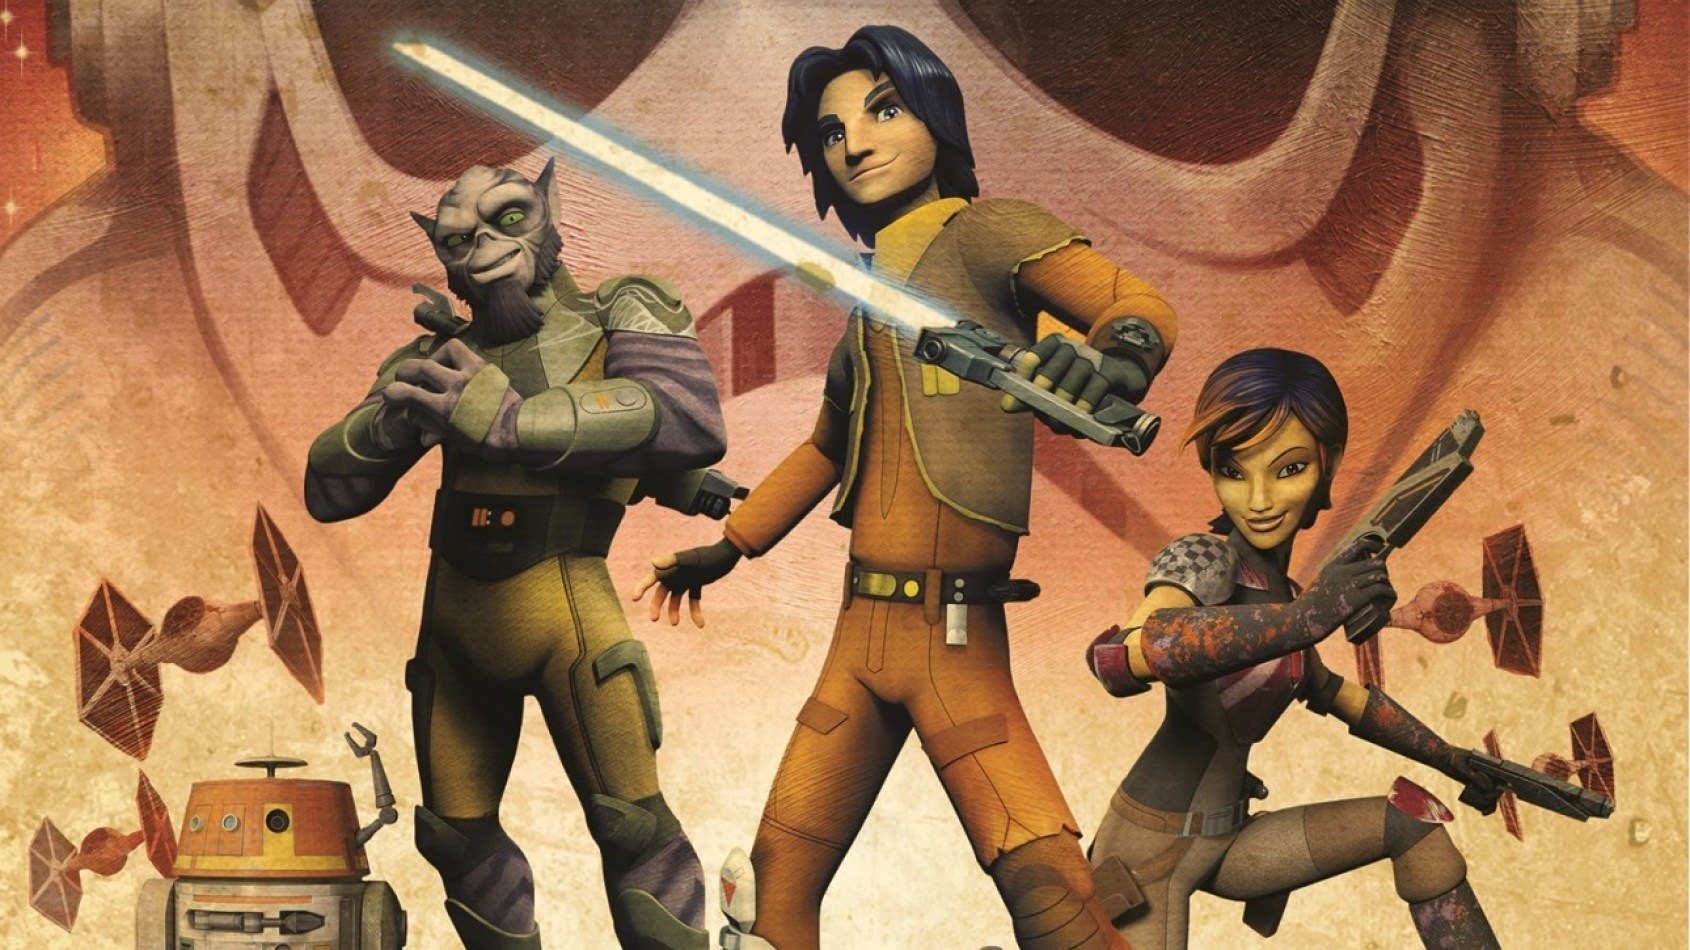 [Delcourt] Sortie de Star Wars Rebels 2